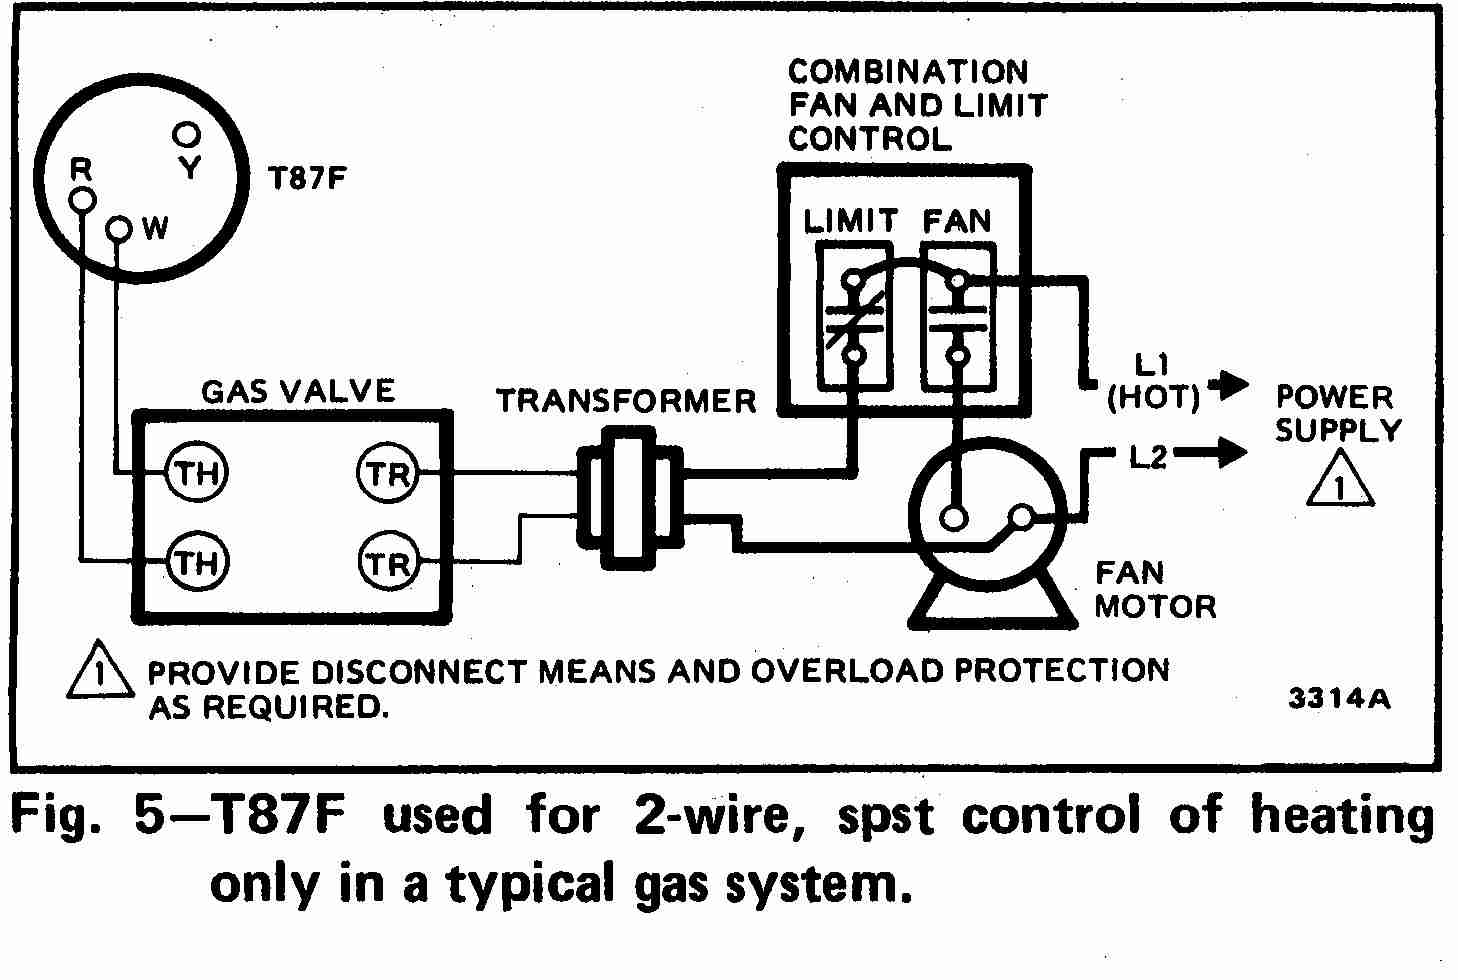 Room Thermostat Wiring Diagrams For Hvac Systems Diagram Single Honeywell T87f 2 Wire Spst Control Of Heating Only In